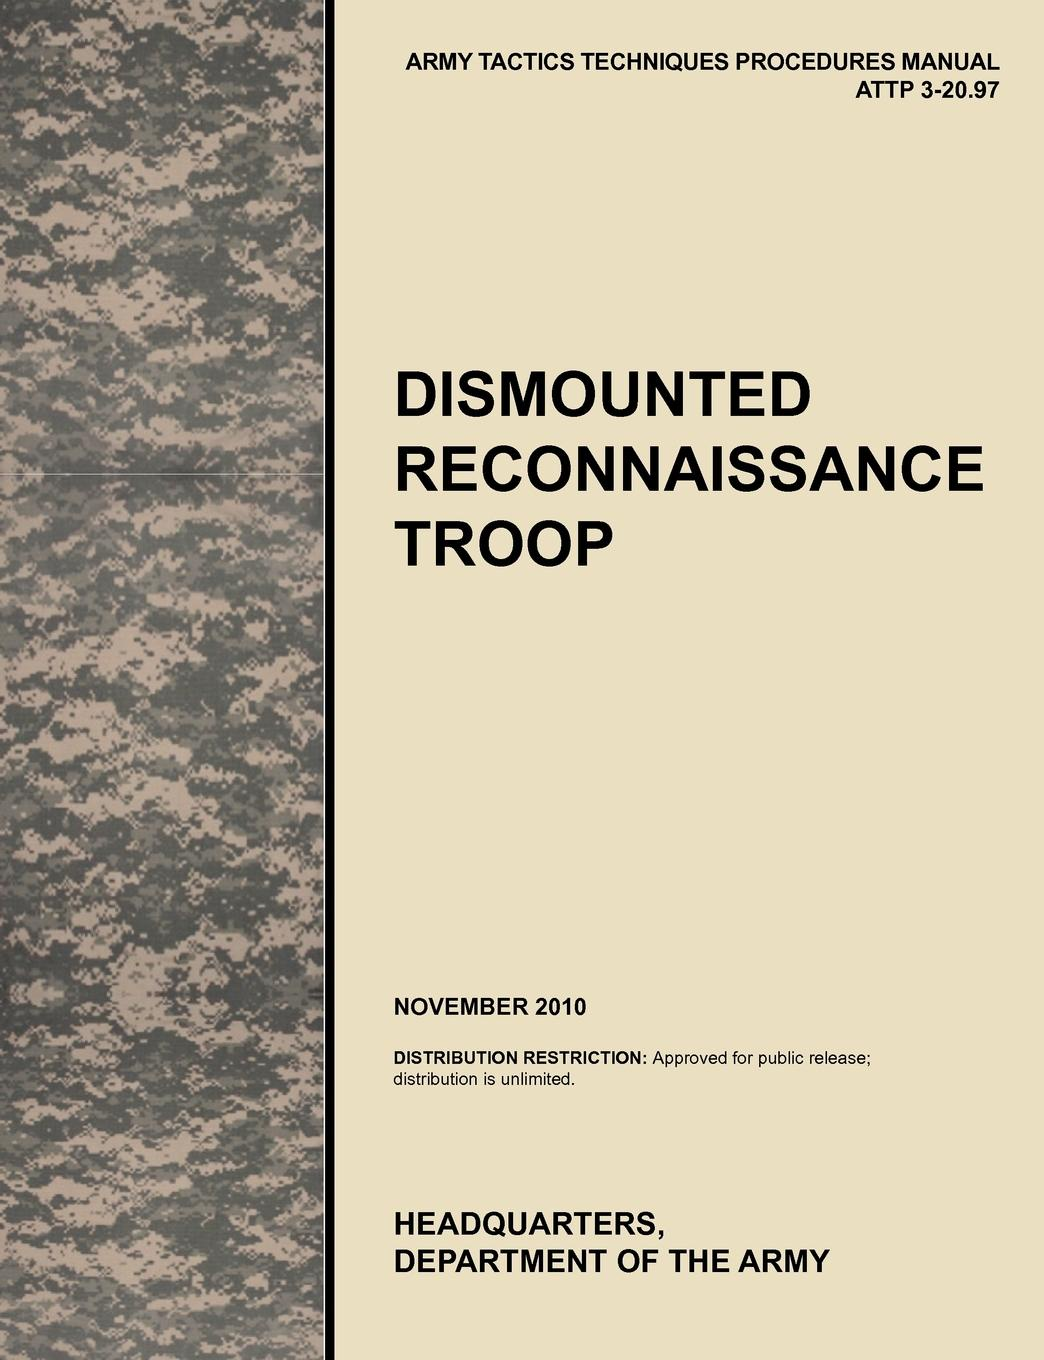 U. S. Army Training and Doctrine Command, Army Maneuver Center of Excellence, U. S. Department of the Dismounted Recconnaisance Troop. The Official U.S. Army Tactics, Techniques, and Procedures (Attp) Manual 3.20-97 (November 2010) department of the army u s army corps of engineers water resource policies and authorities incorporating sea level change considerations in civil works programs